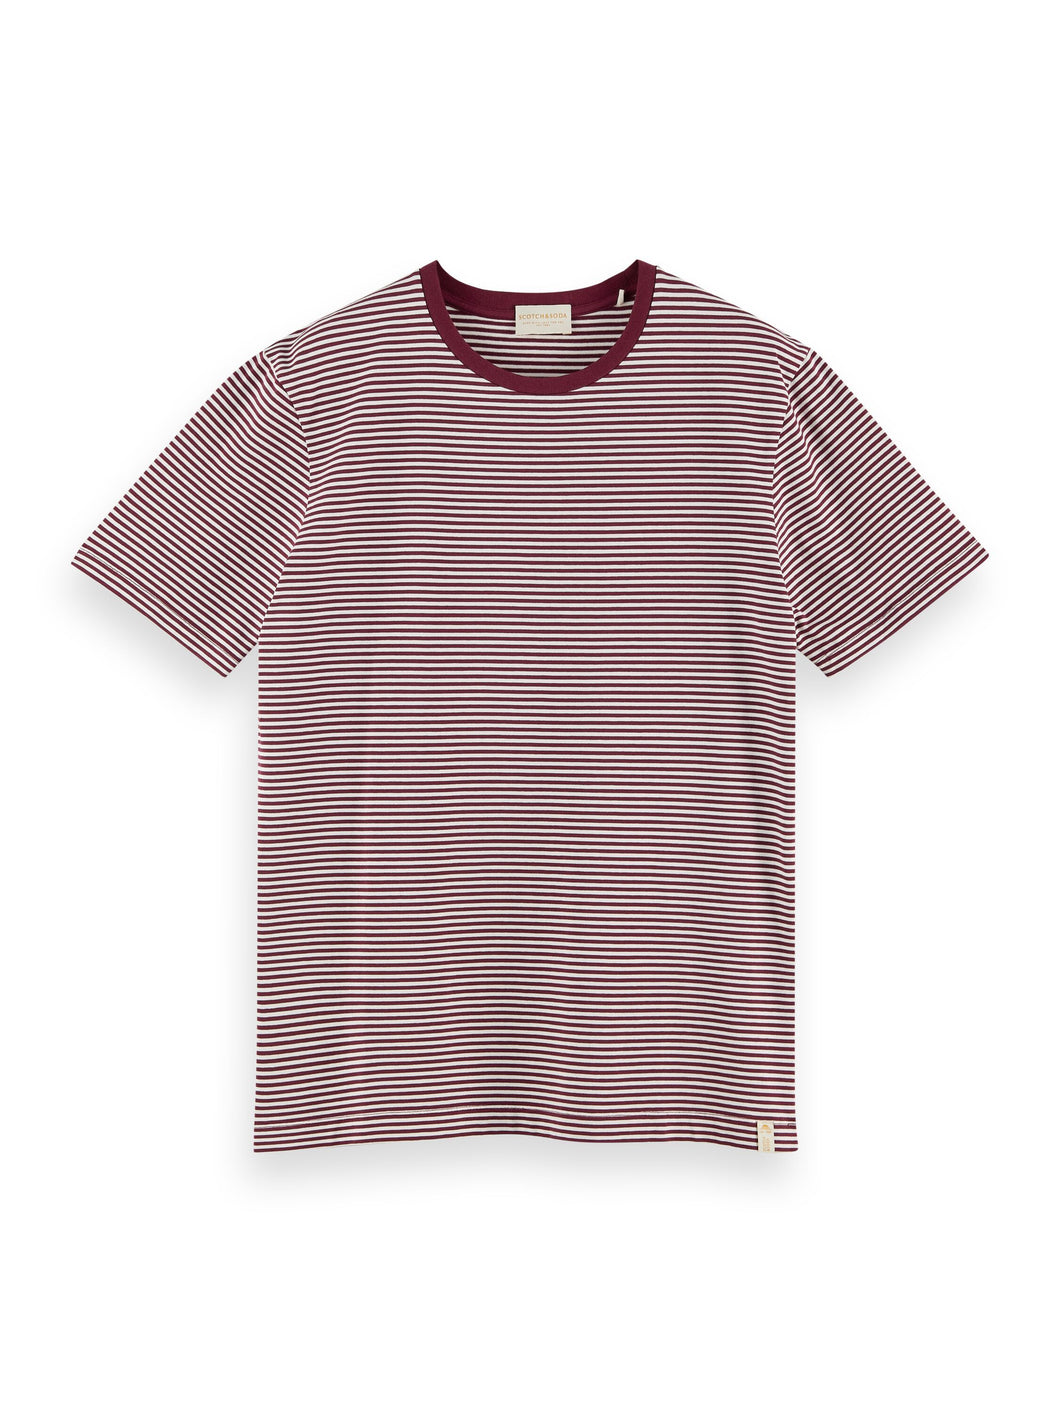 Scotch & Soda Classic Crewneck T-Shirt